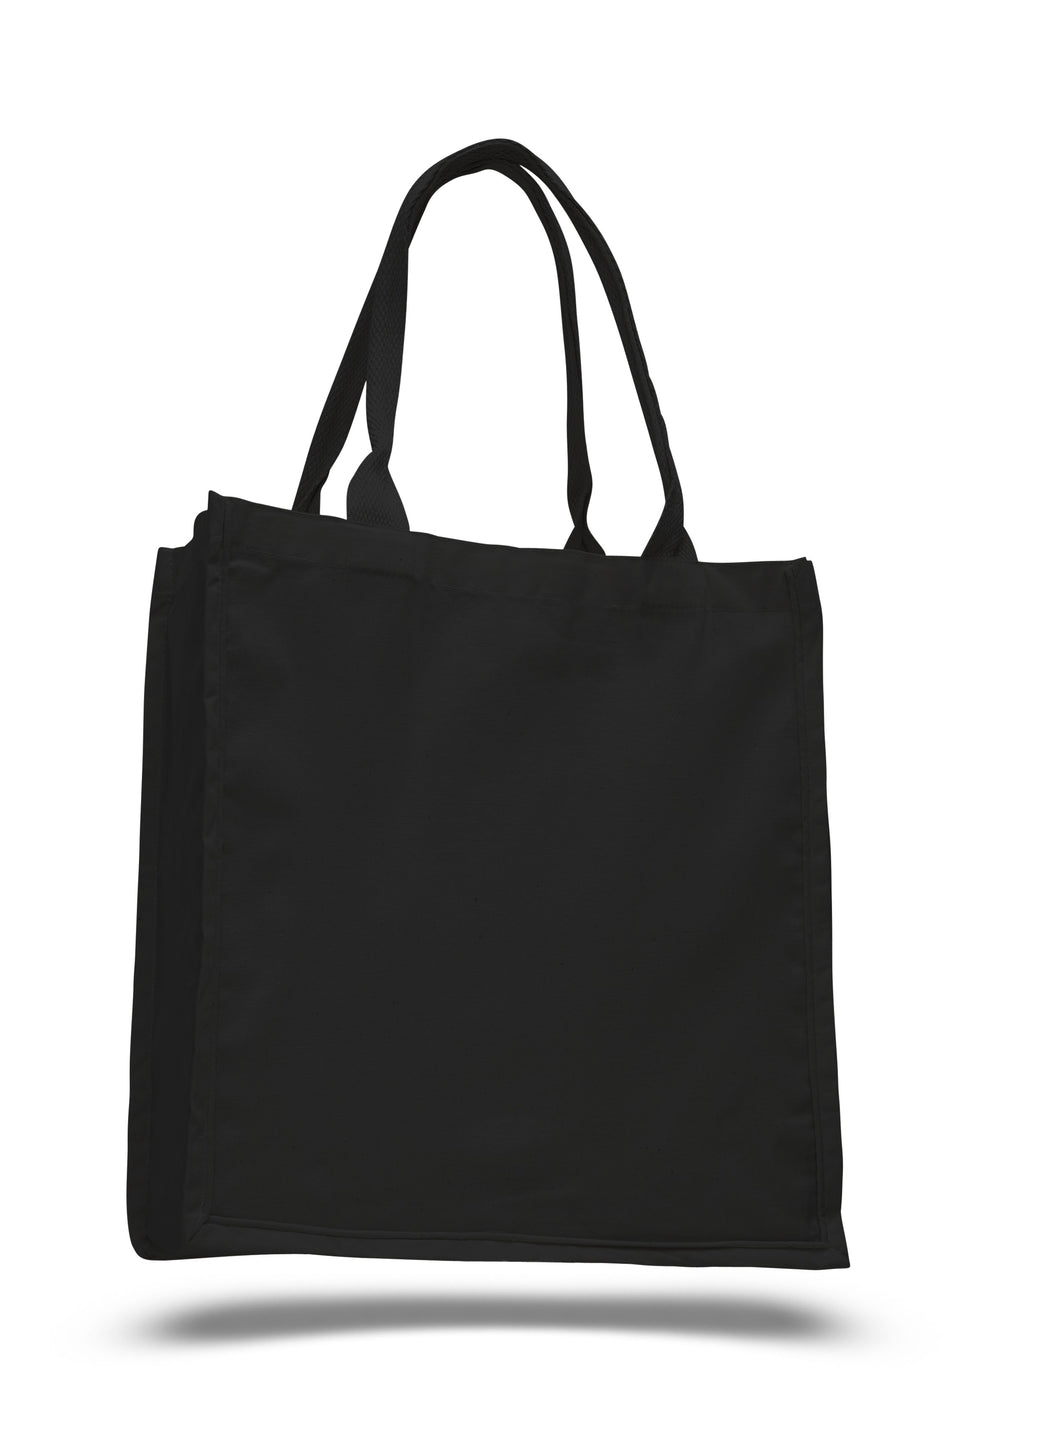 All Cotton Fancy Canvas Totes, Well Constructed with Heavy Duty Canvas Available at Wholesale Pricing! Just $2.99 Each.